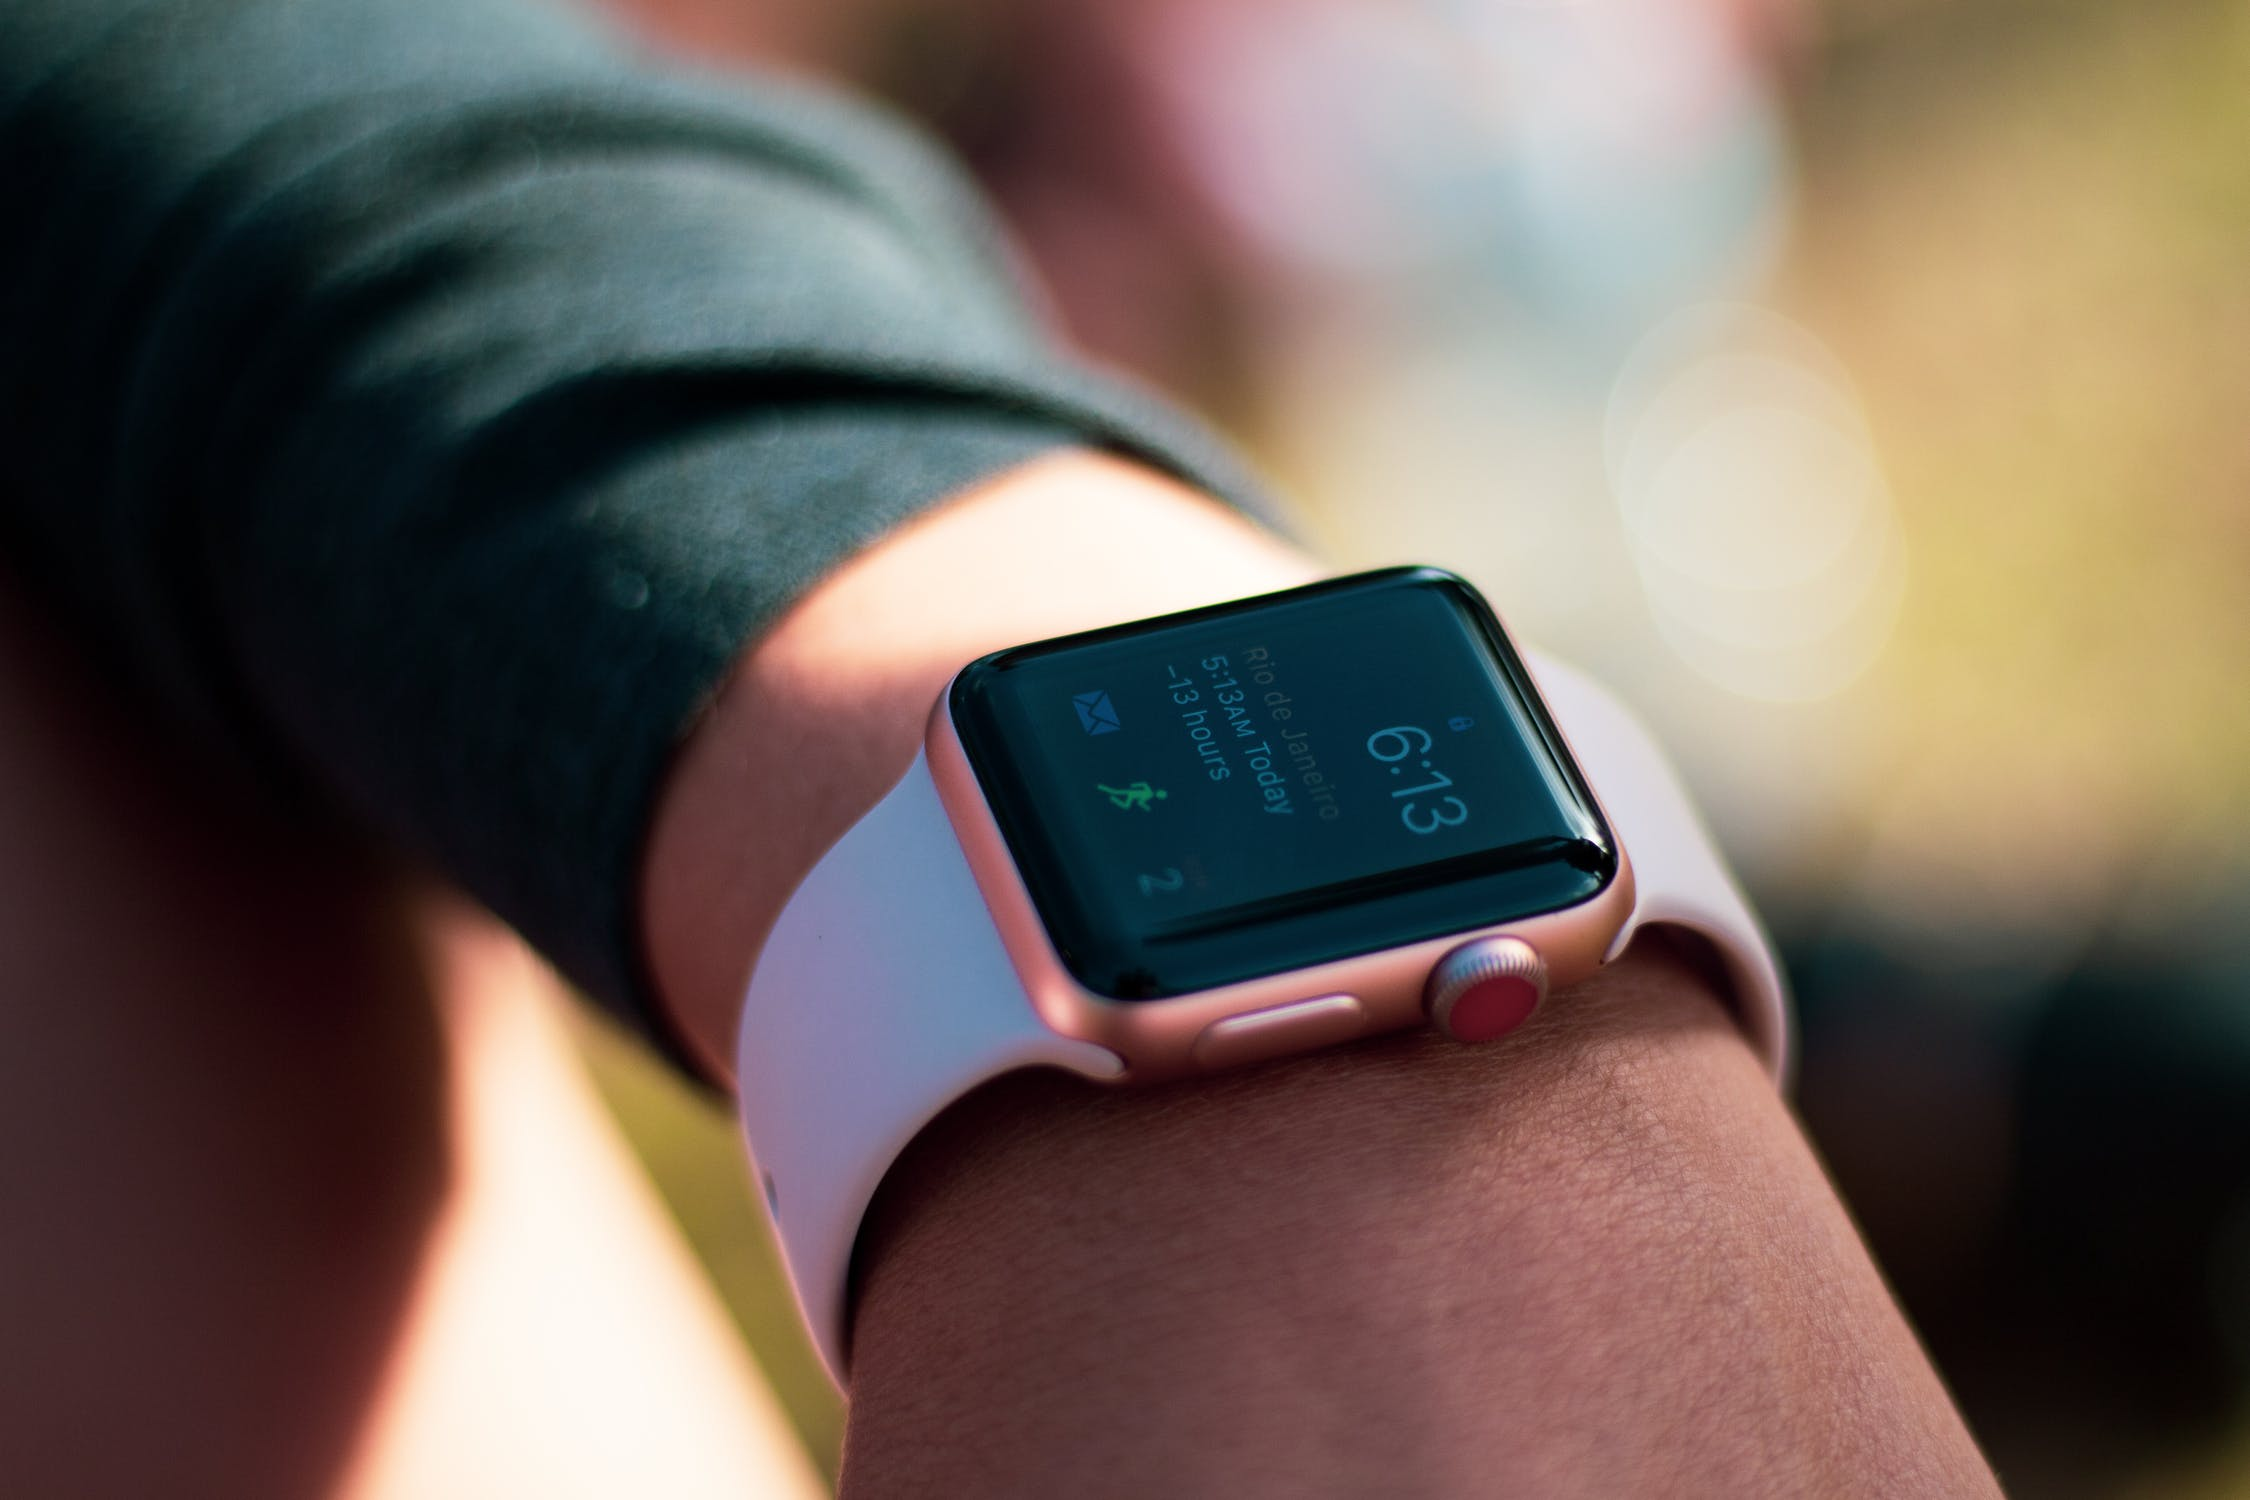 3 Best Smartwatch in India 2021 Makes you Worthy